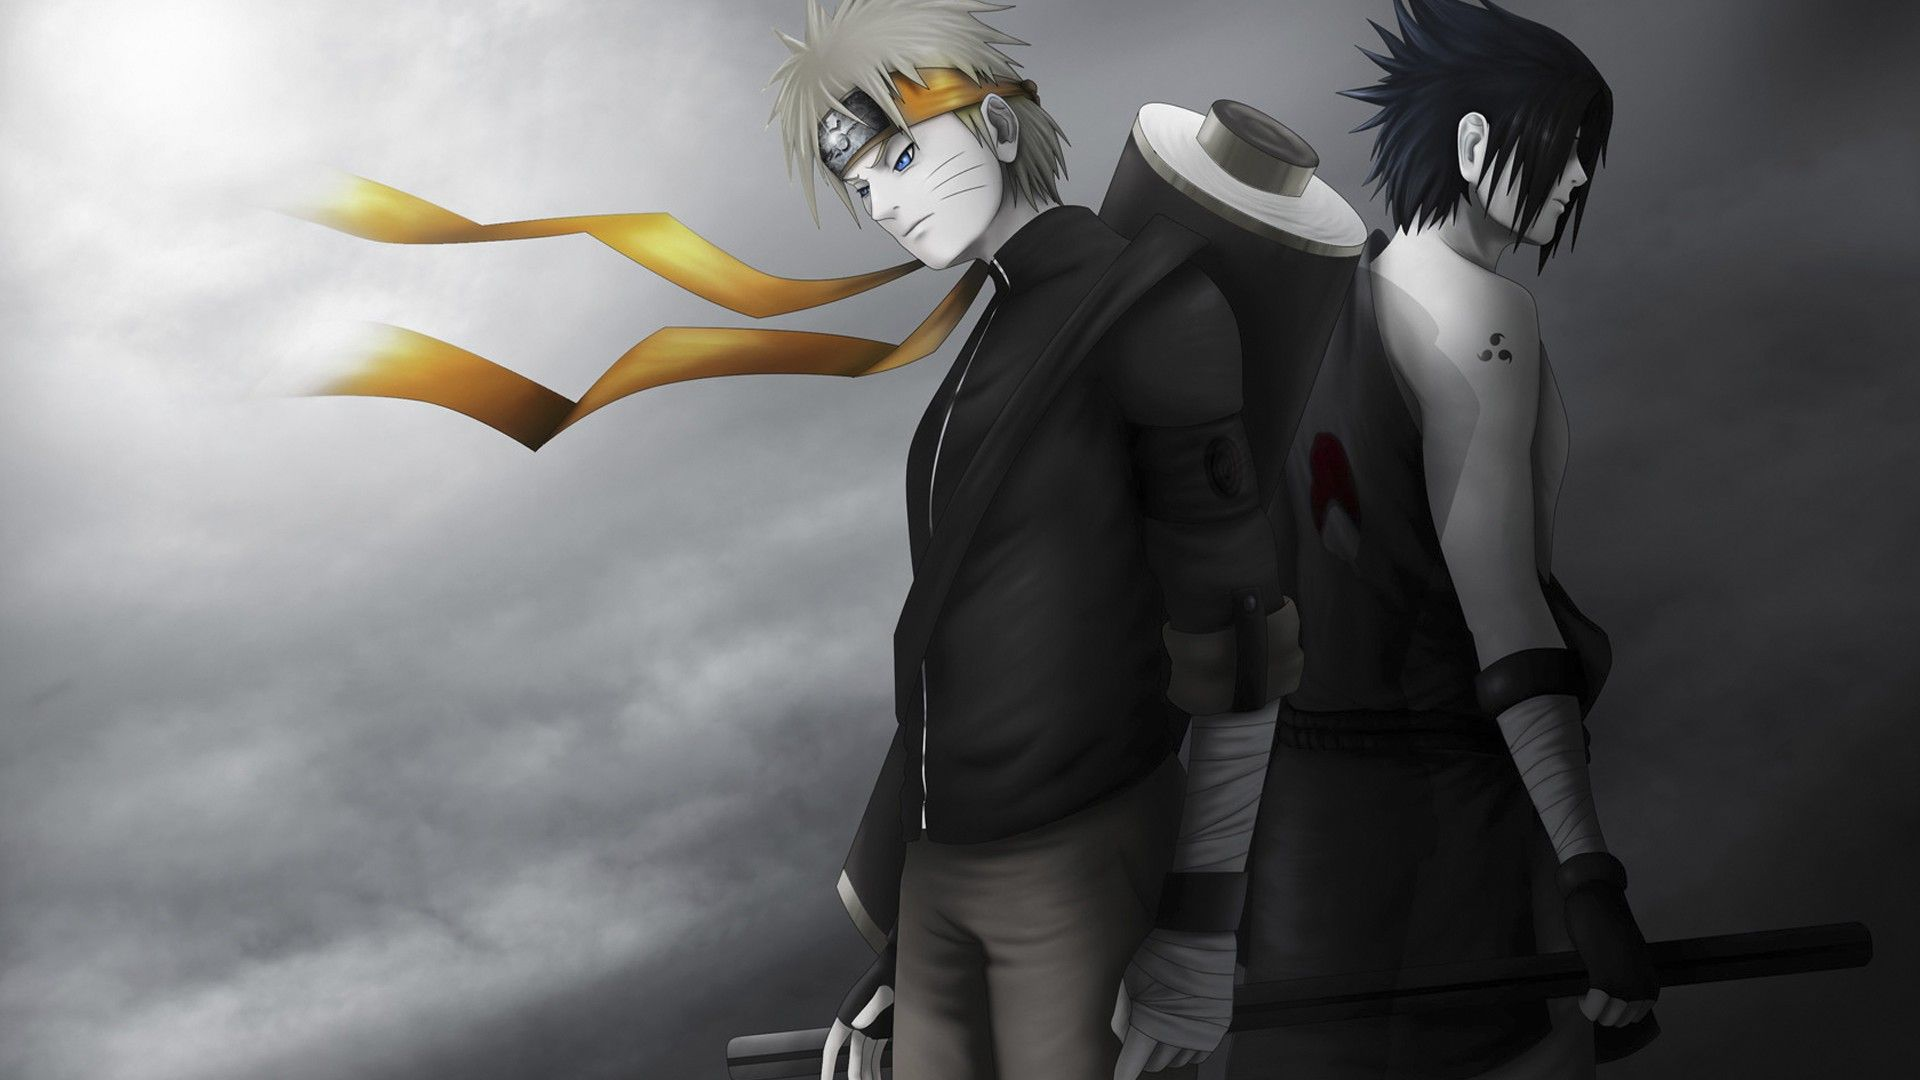 Naruto Wallpapers Wallpaper Naruto Shippuden Naruto And Sasuke Wallpaper Hd Anime Wallpapers